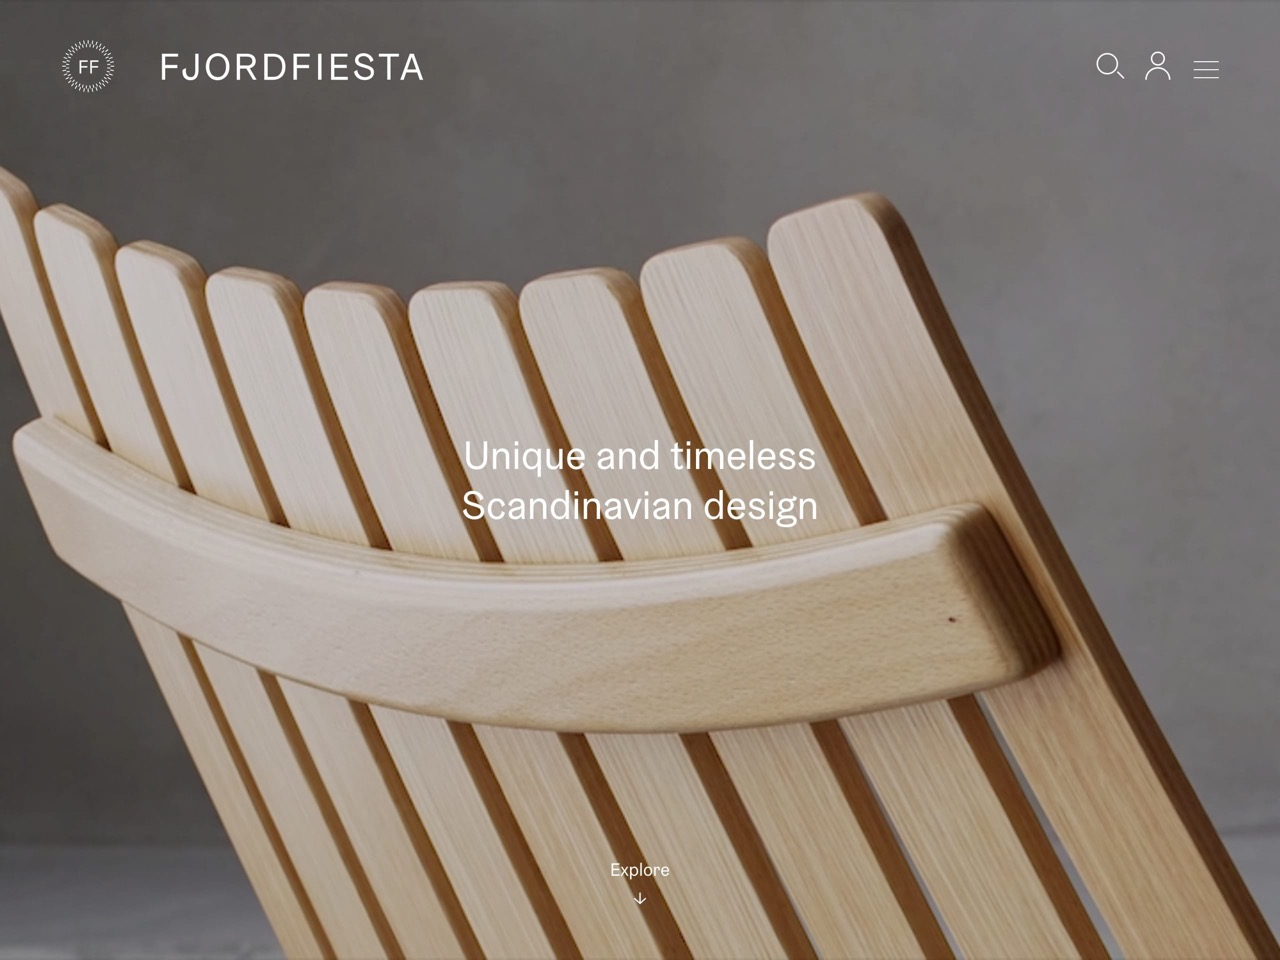 Scandinavian design heritage and bold norwegian flavor   fjordfiesta